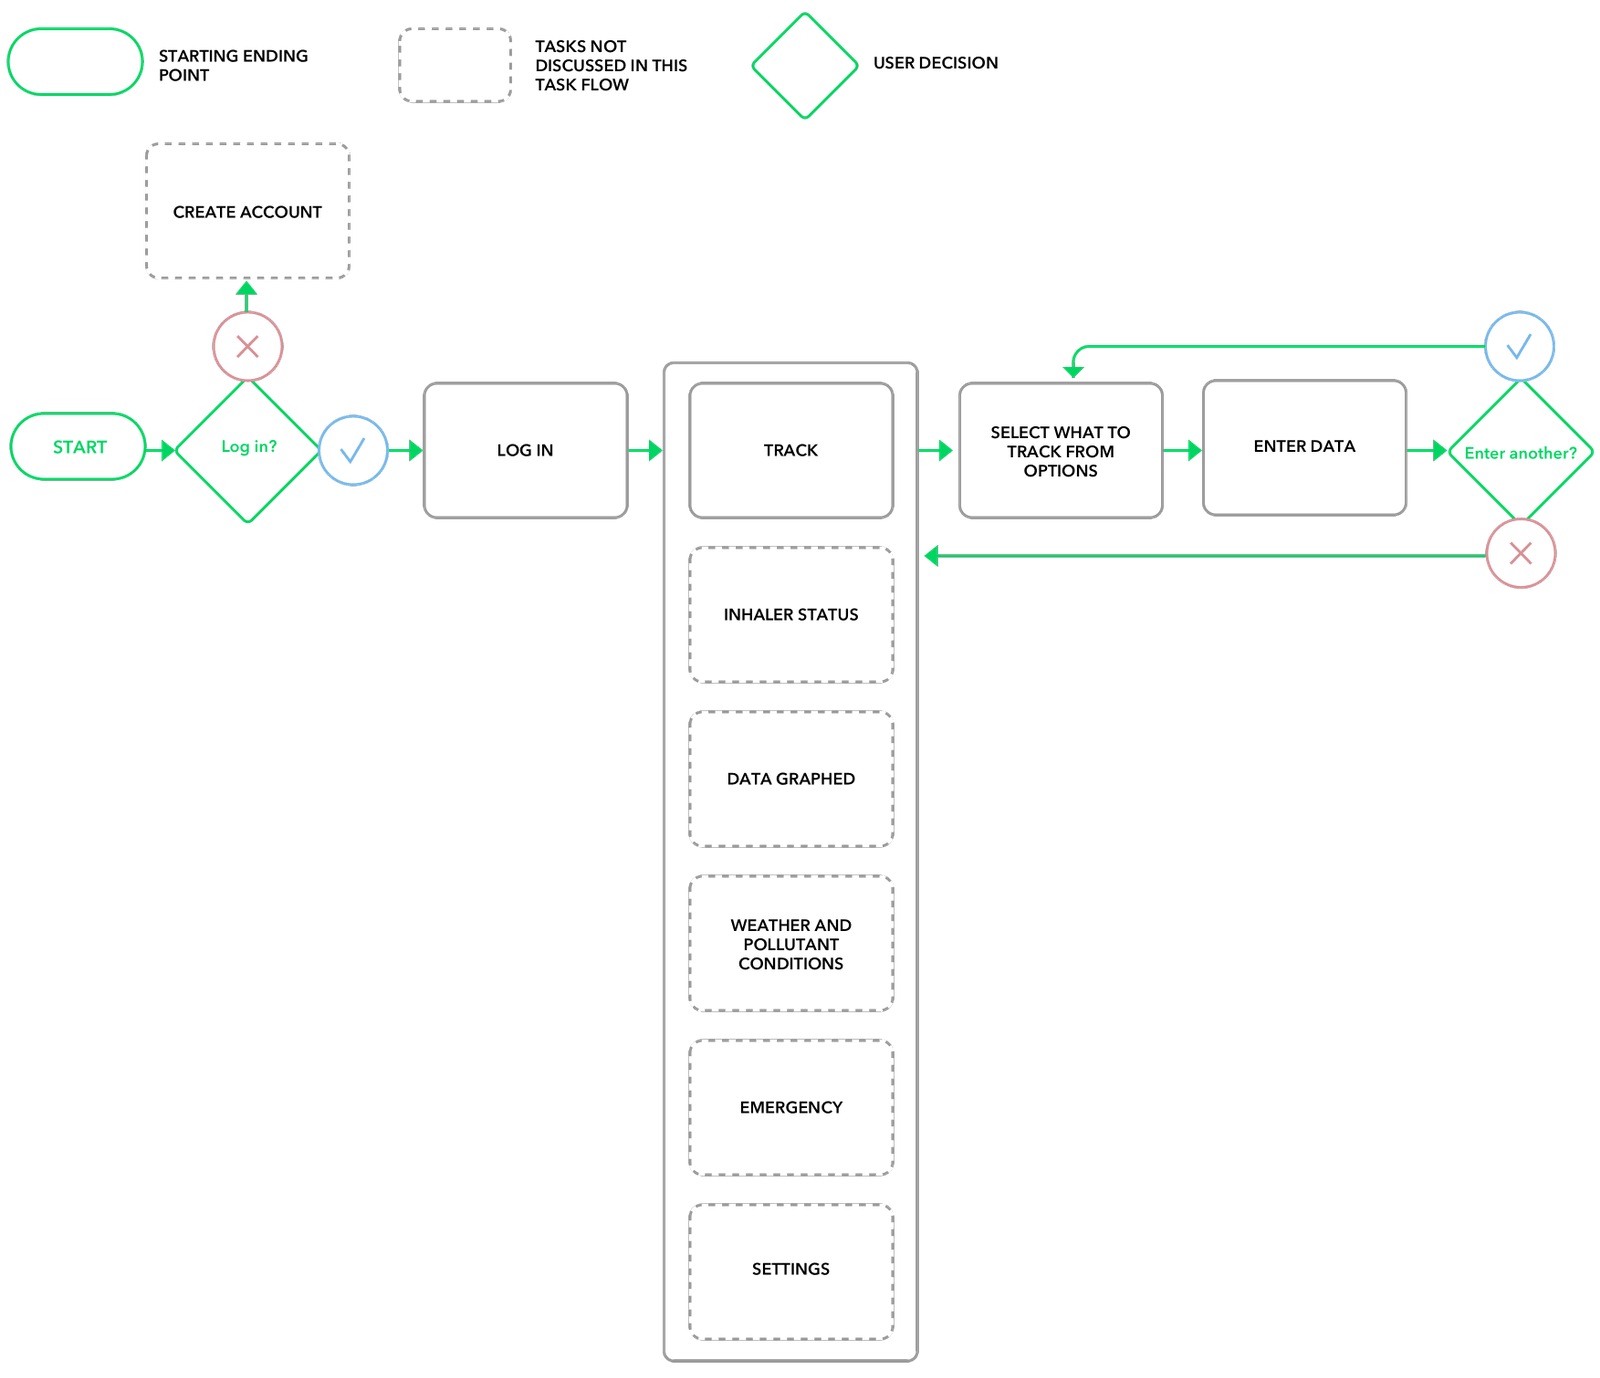 Userflow_Tracking_3x-p-1600.png